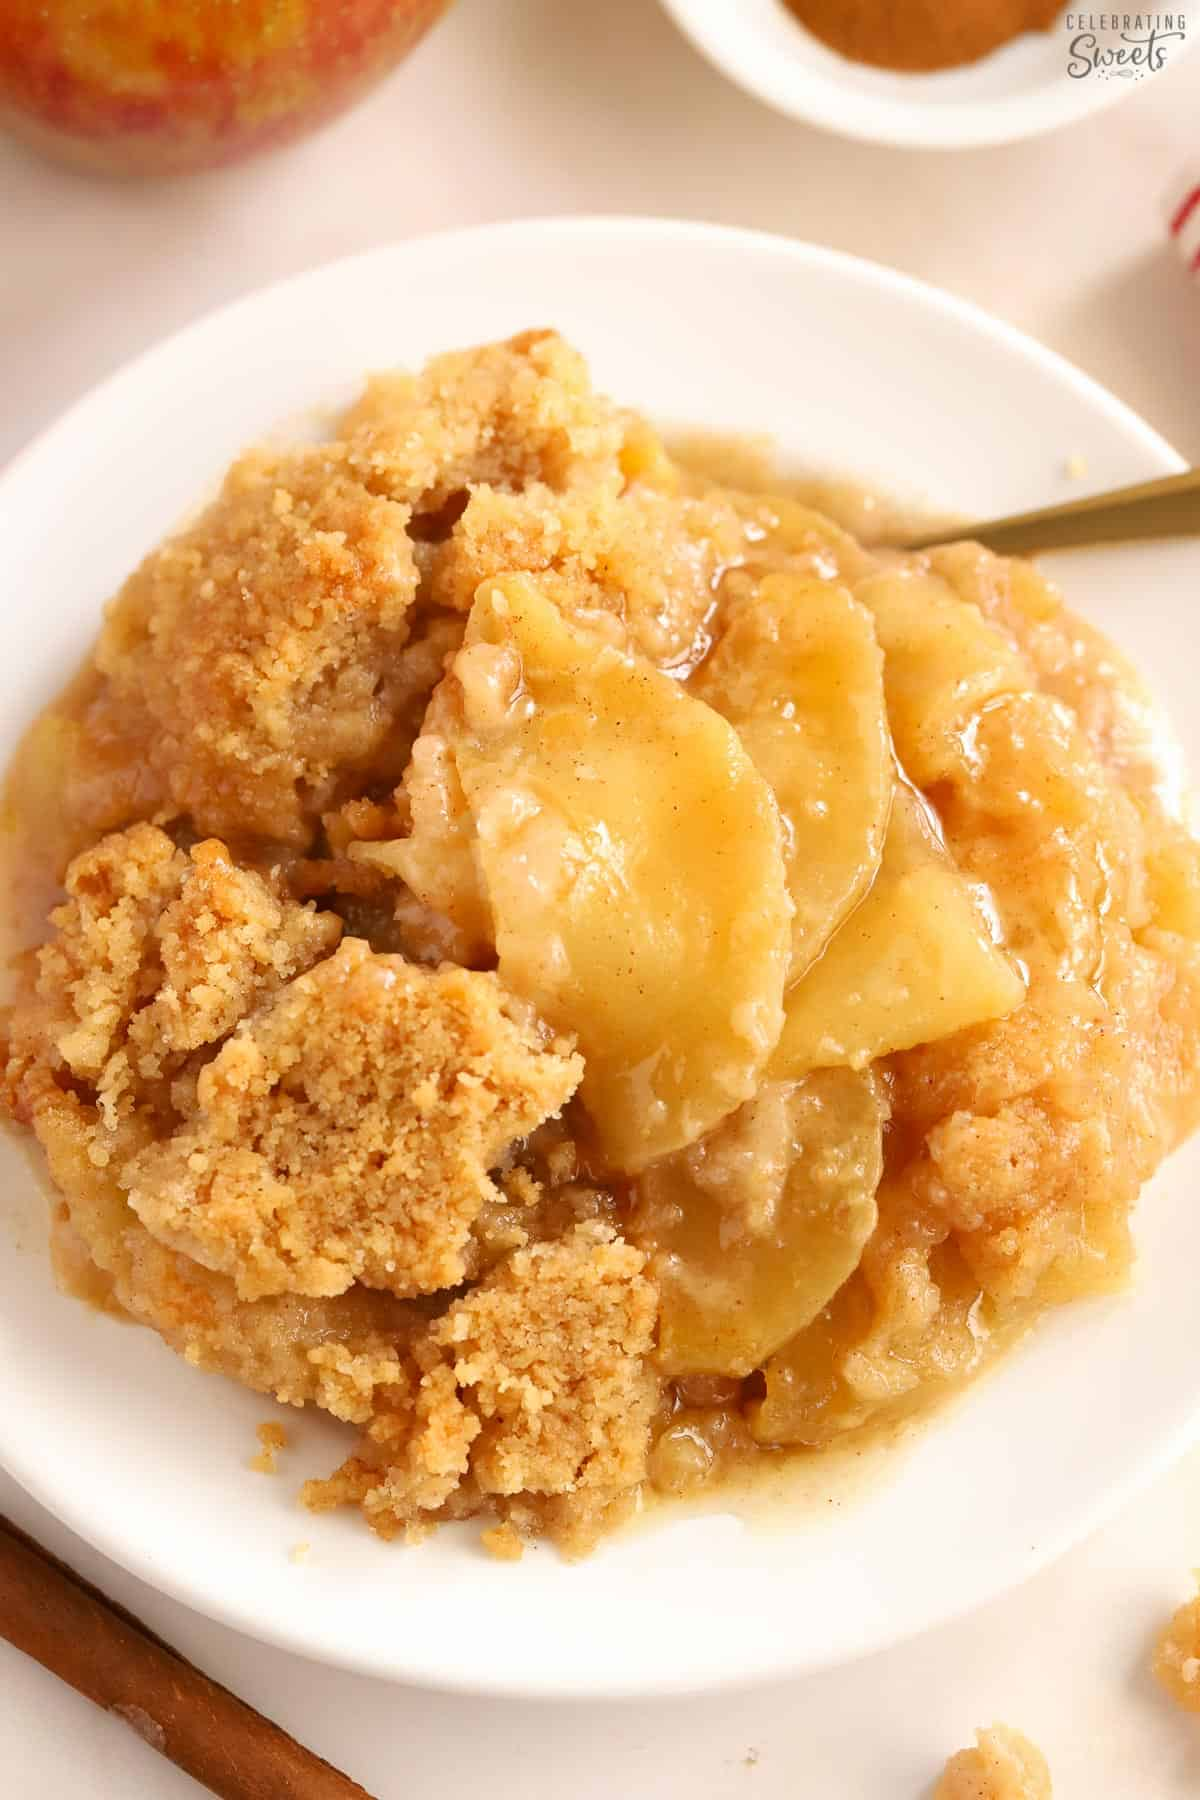 Apple crumble on a white plate with a gold fork.